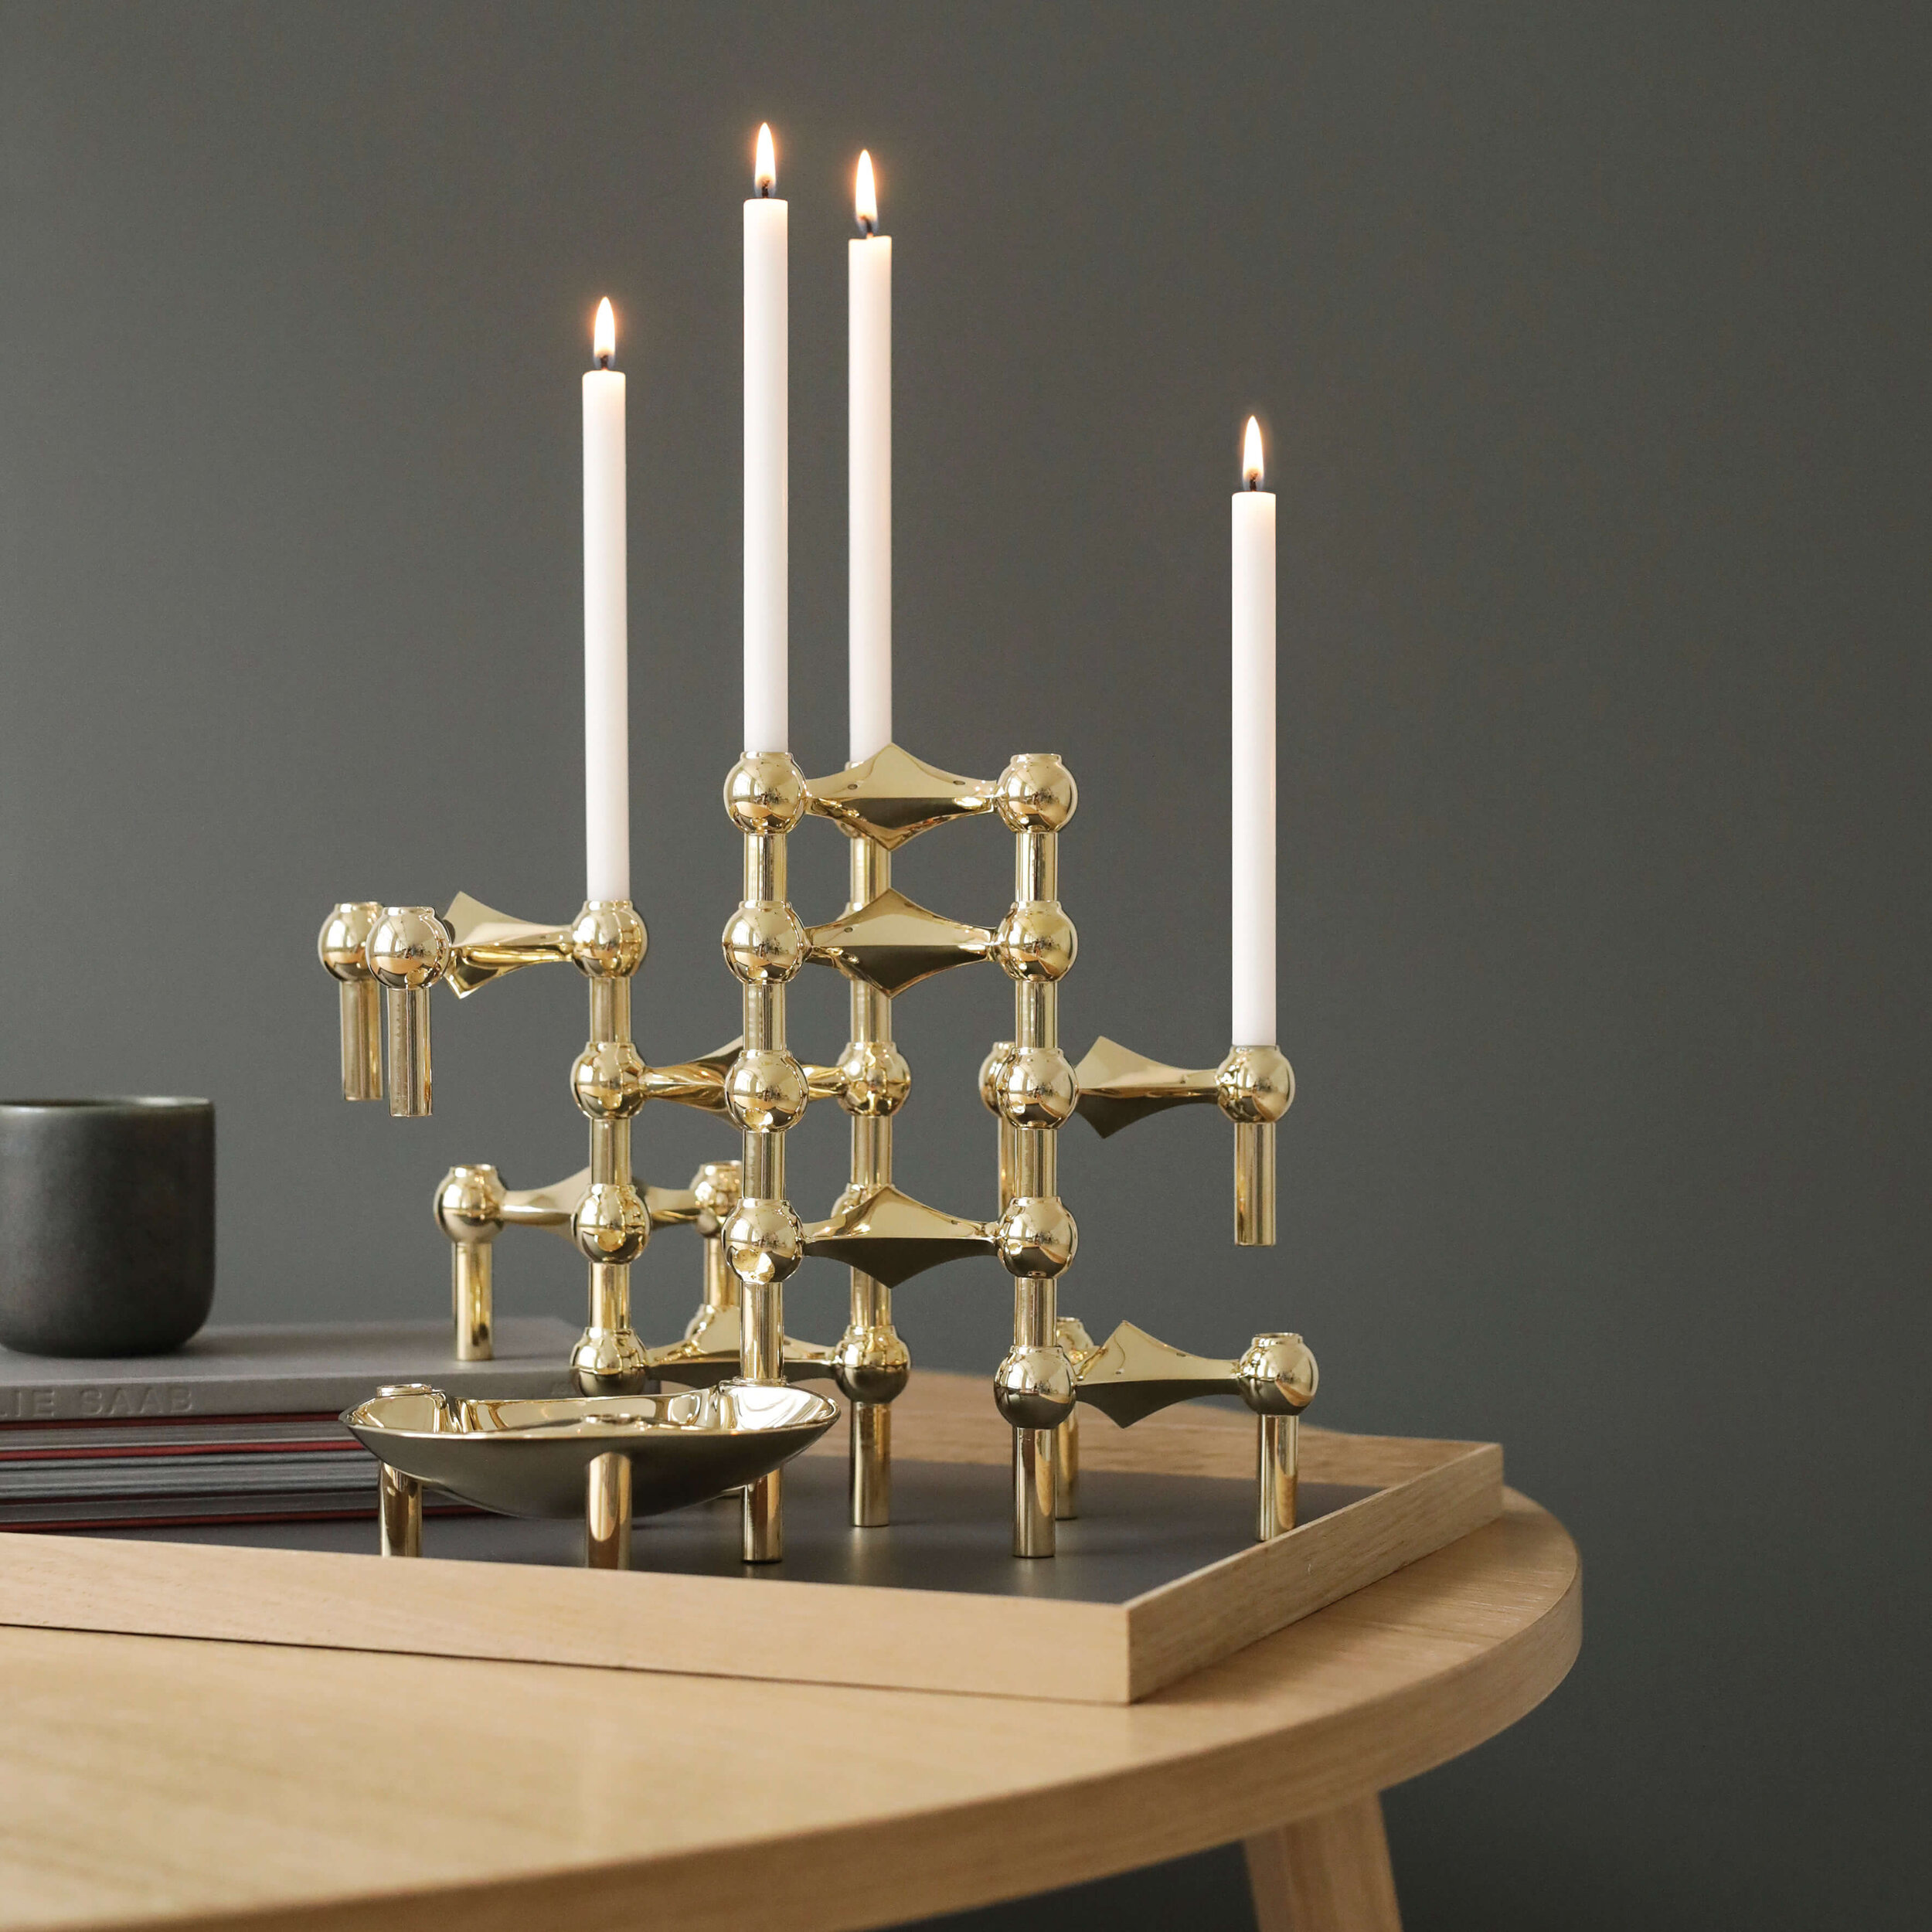 Treat your guests to an element of ambient candle light from Stoff Copenhagen modular sets